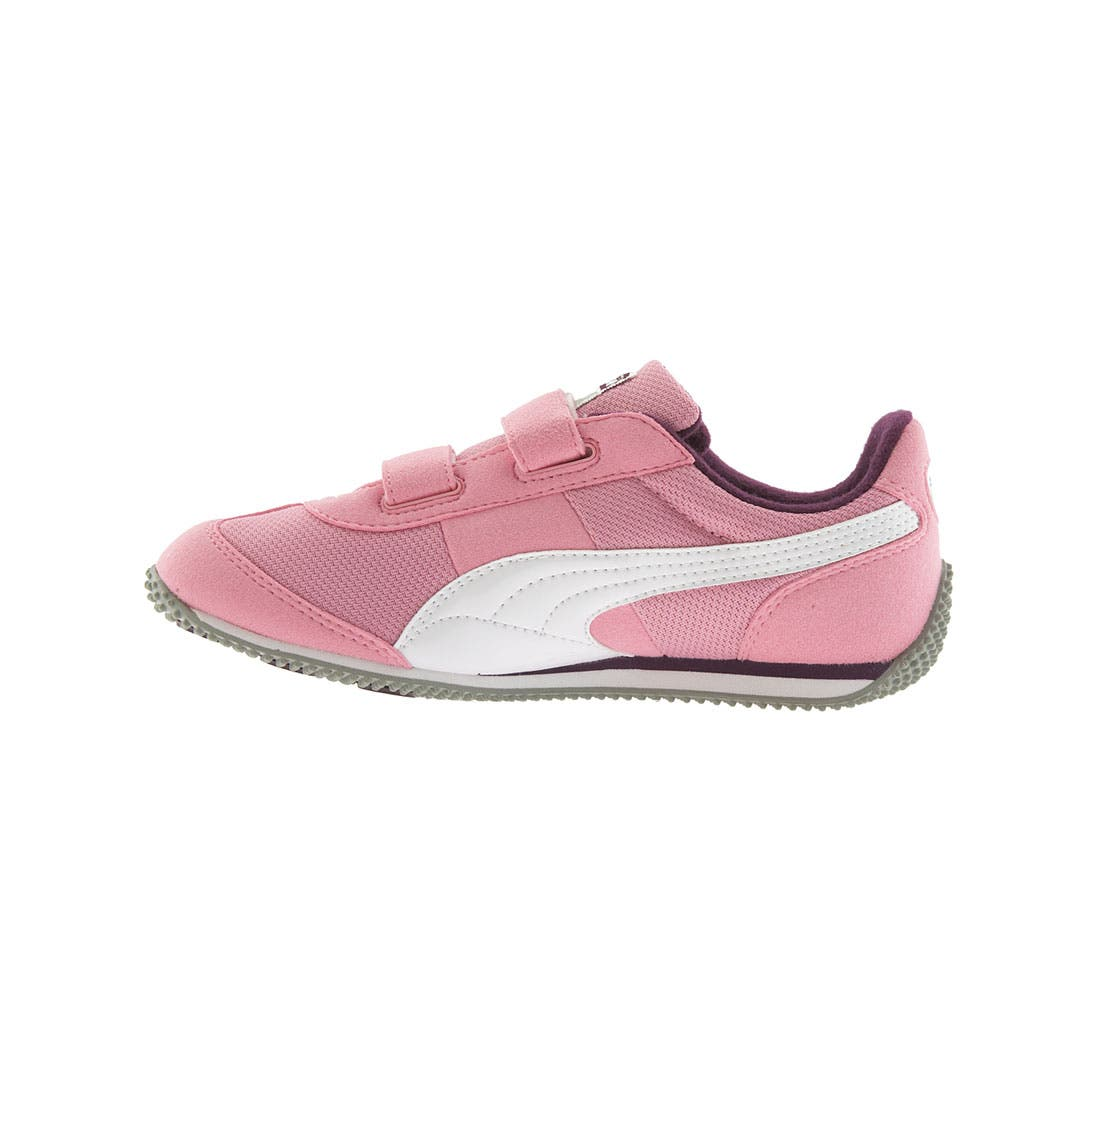 Alternate Image 2  - Puma 'Speeder Mesh' Sneaker (Baby, Walker, Toddler & Little Kid)